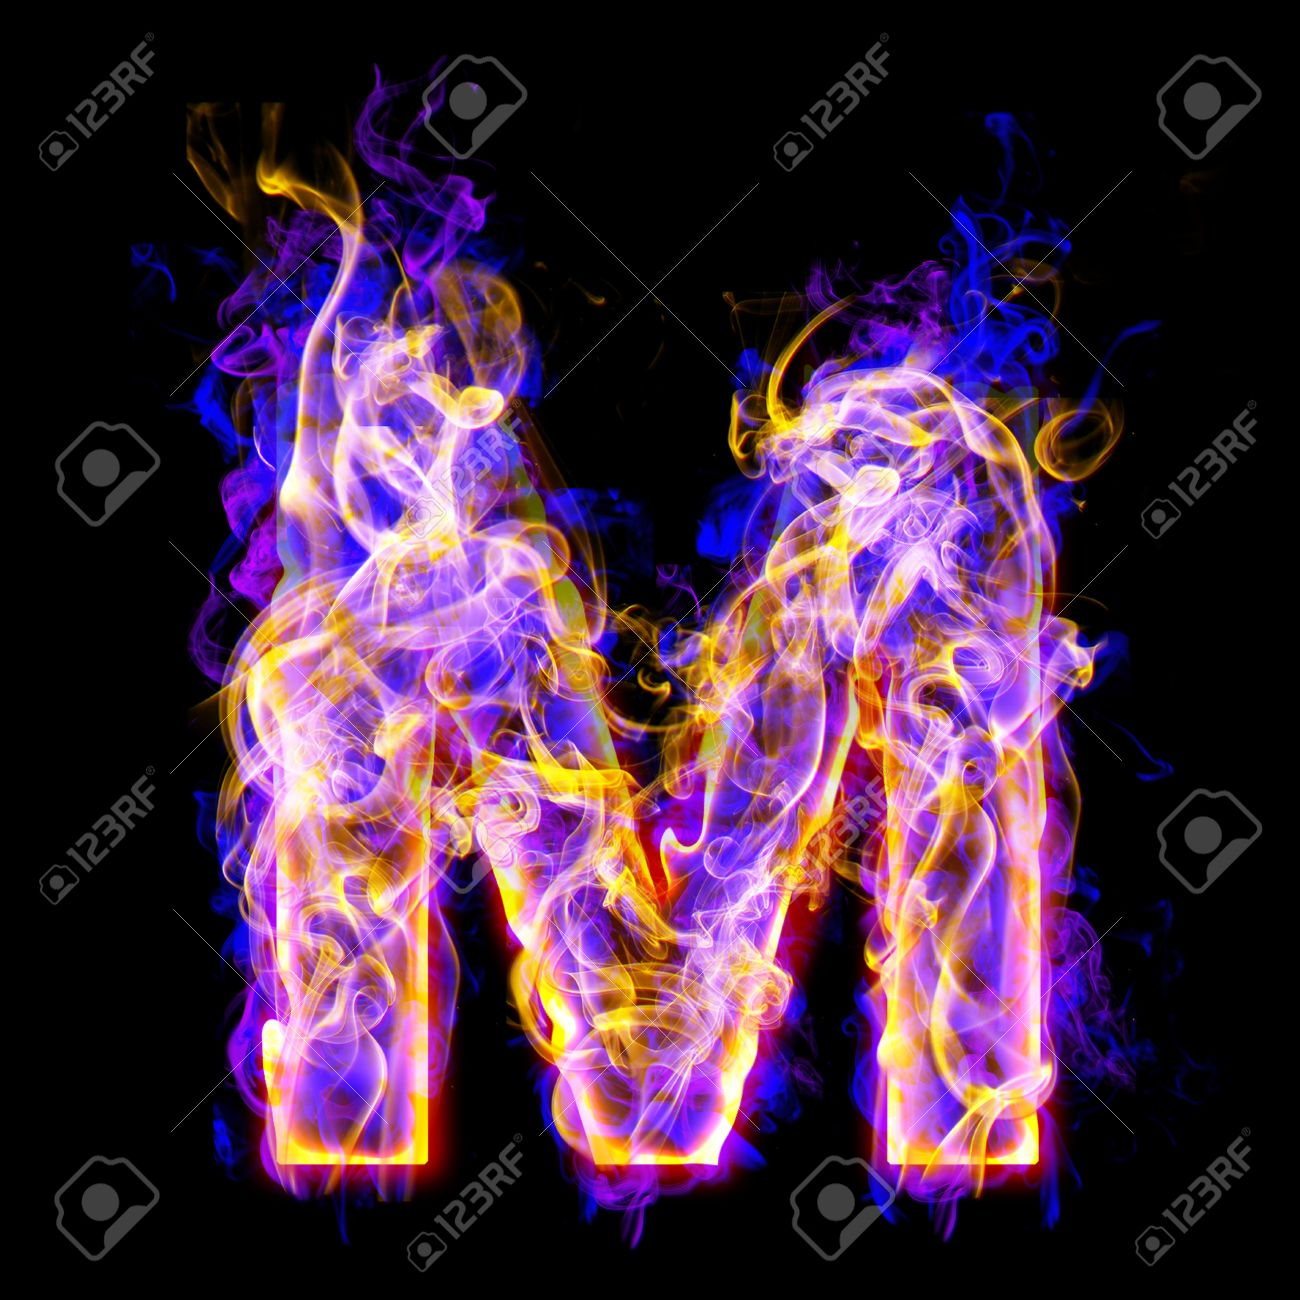 letter m burning with blue and pink colors stock photo, picture